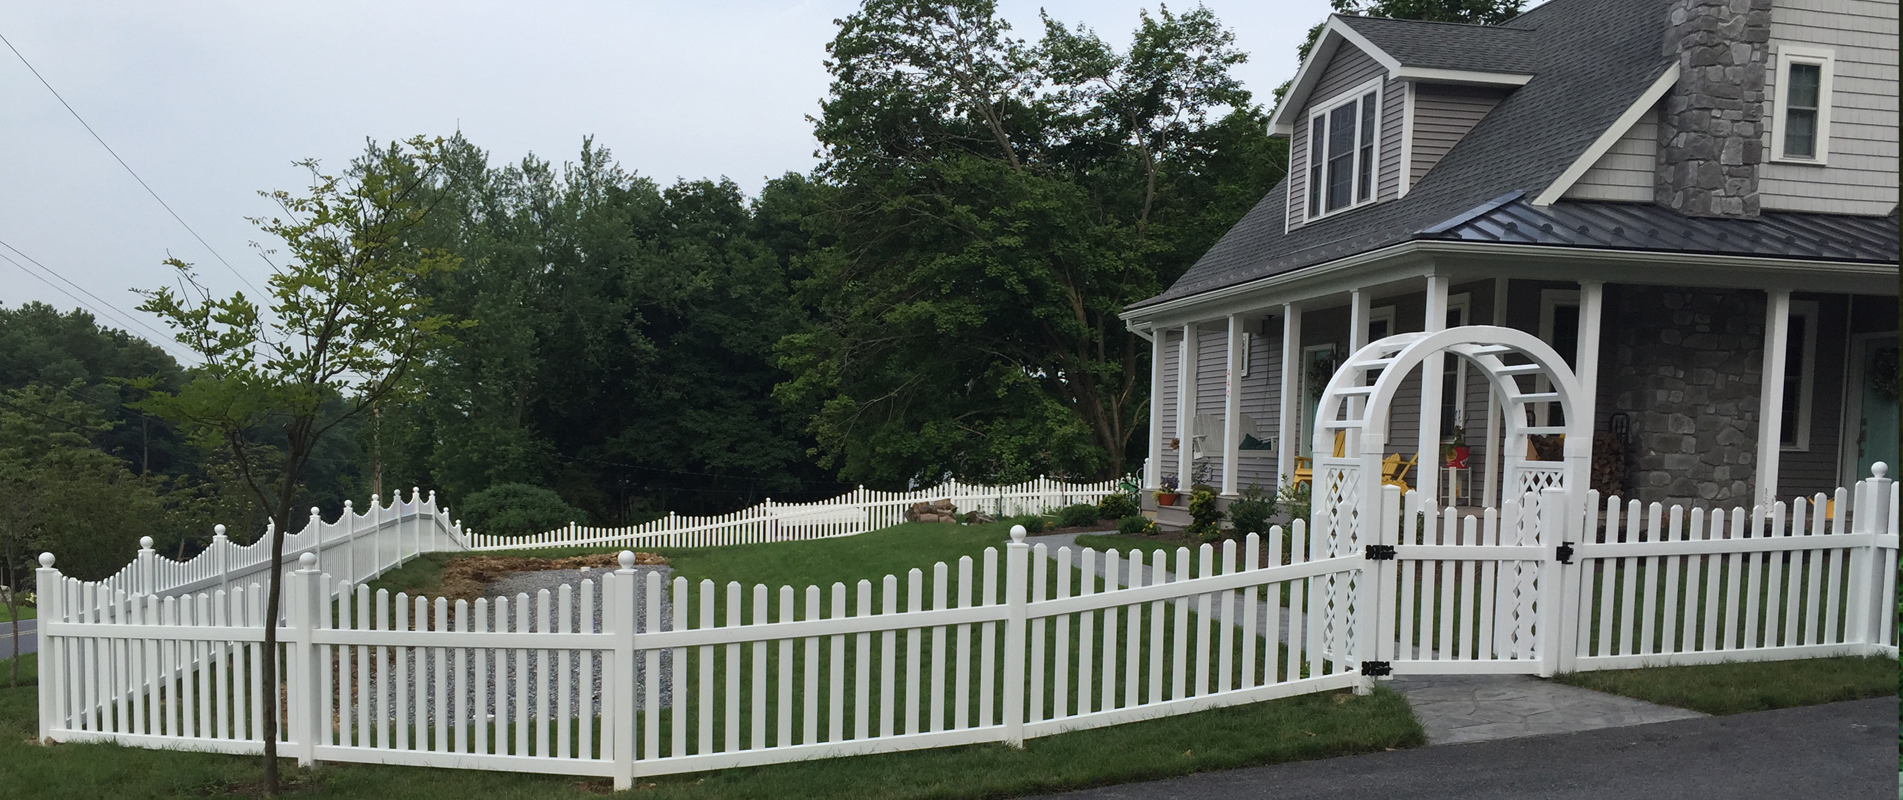 4h-white-vinyl-scalloped-picket-fence